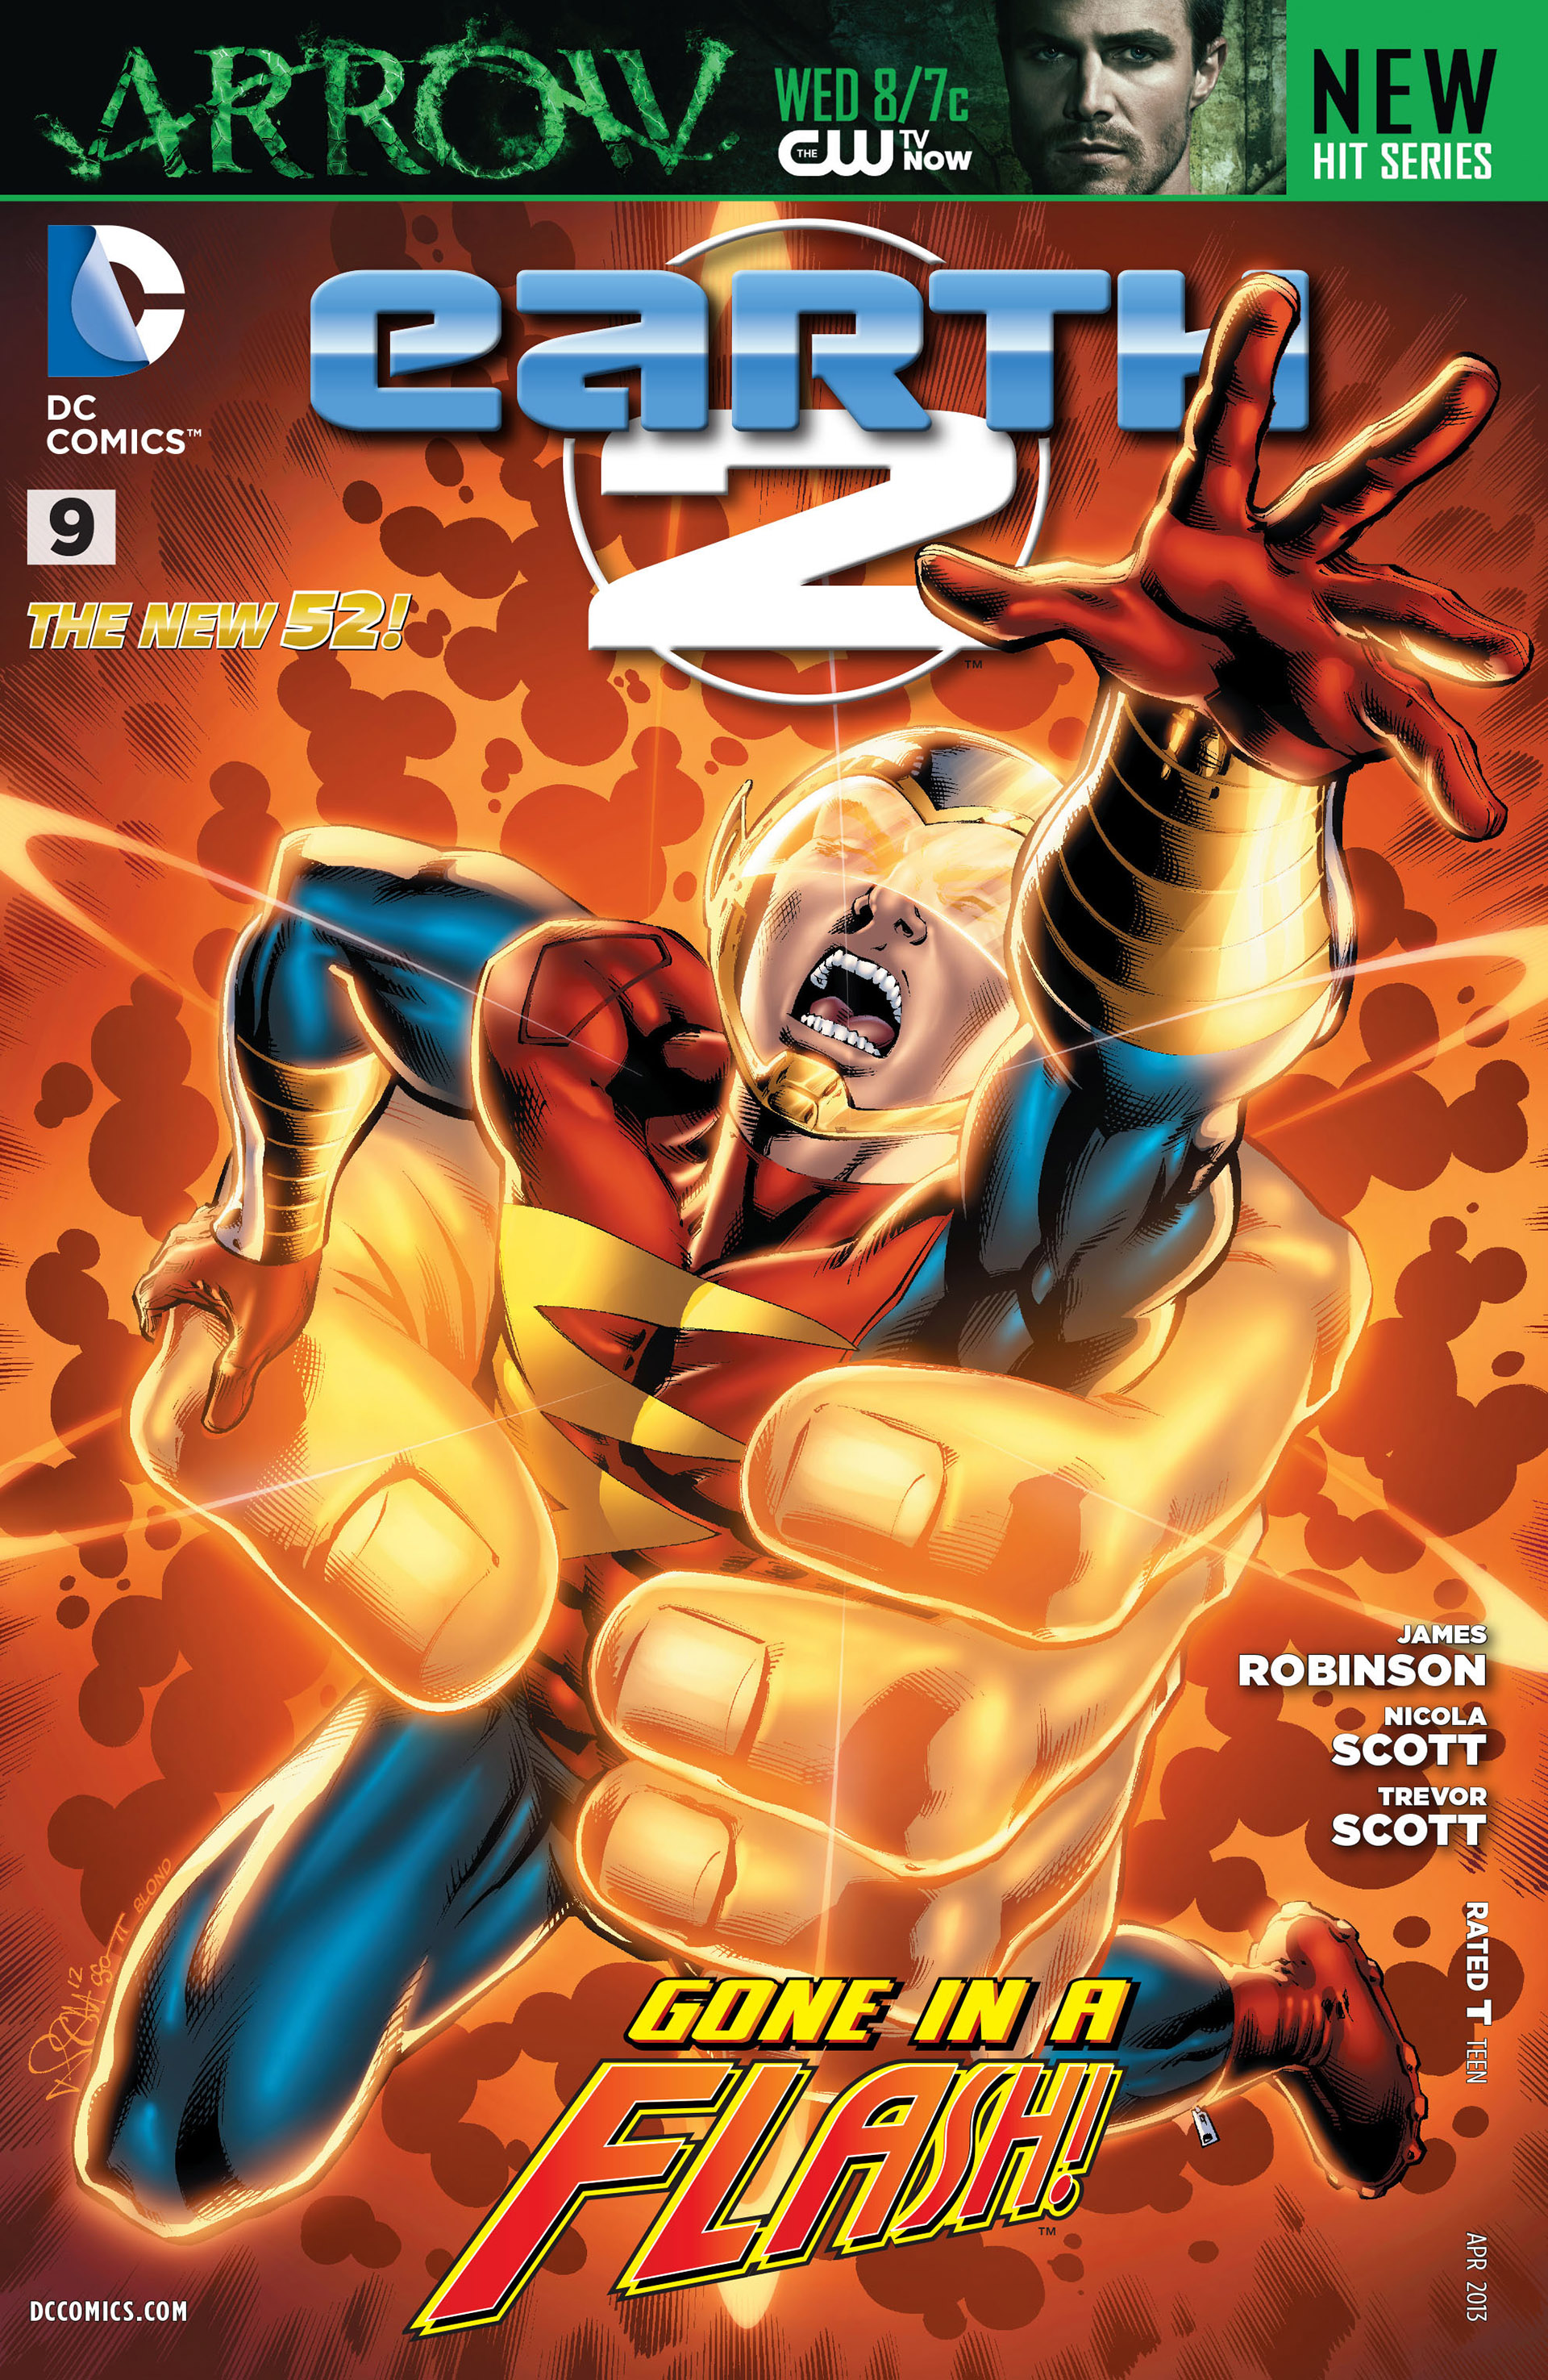 http://images.wikia.com/marvel_dc/images/b/b4/Earth_2_Vol_1_9.jpg